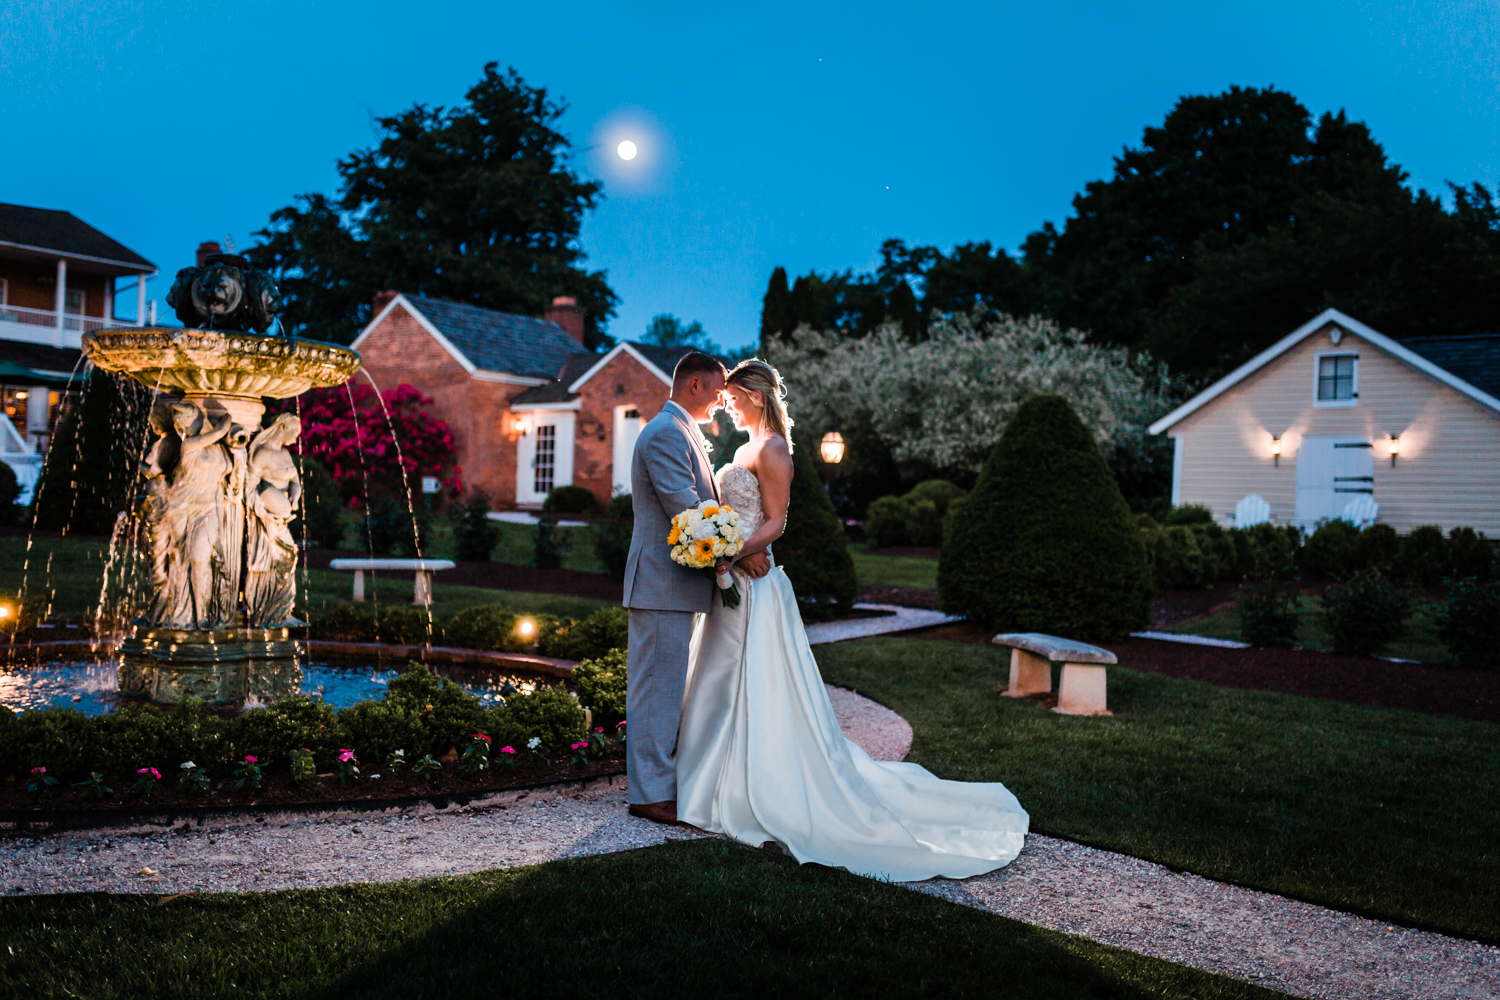 newlyweds pose in front of the fountain at Antrim 1844 with the super moon - Carroll County MD wedding photographer and cinematographer husband and wife team